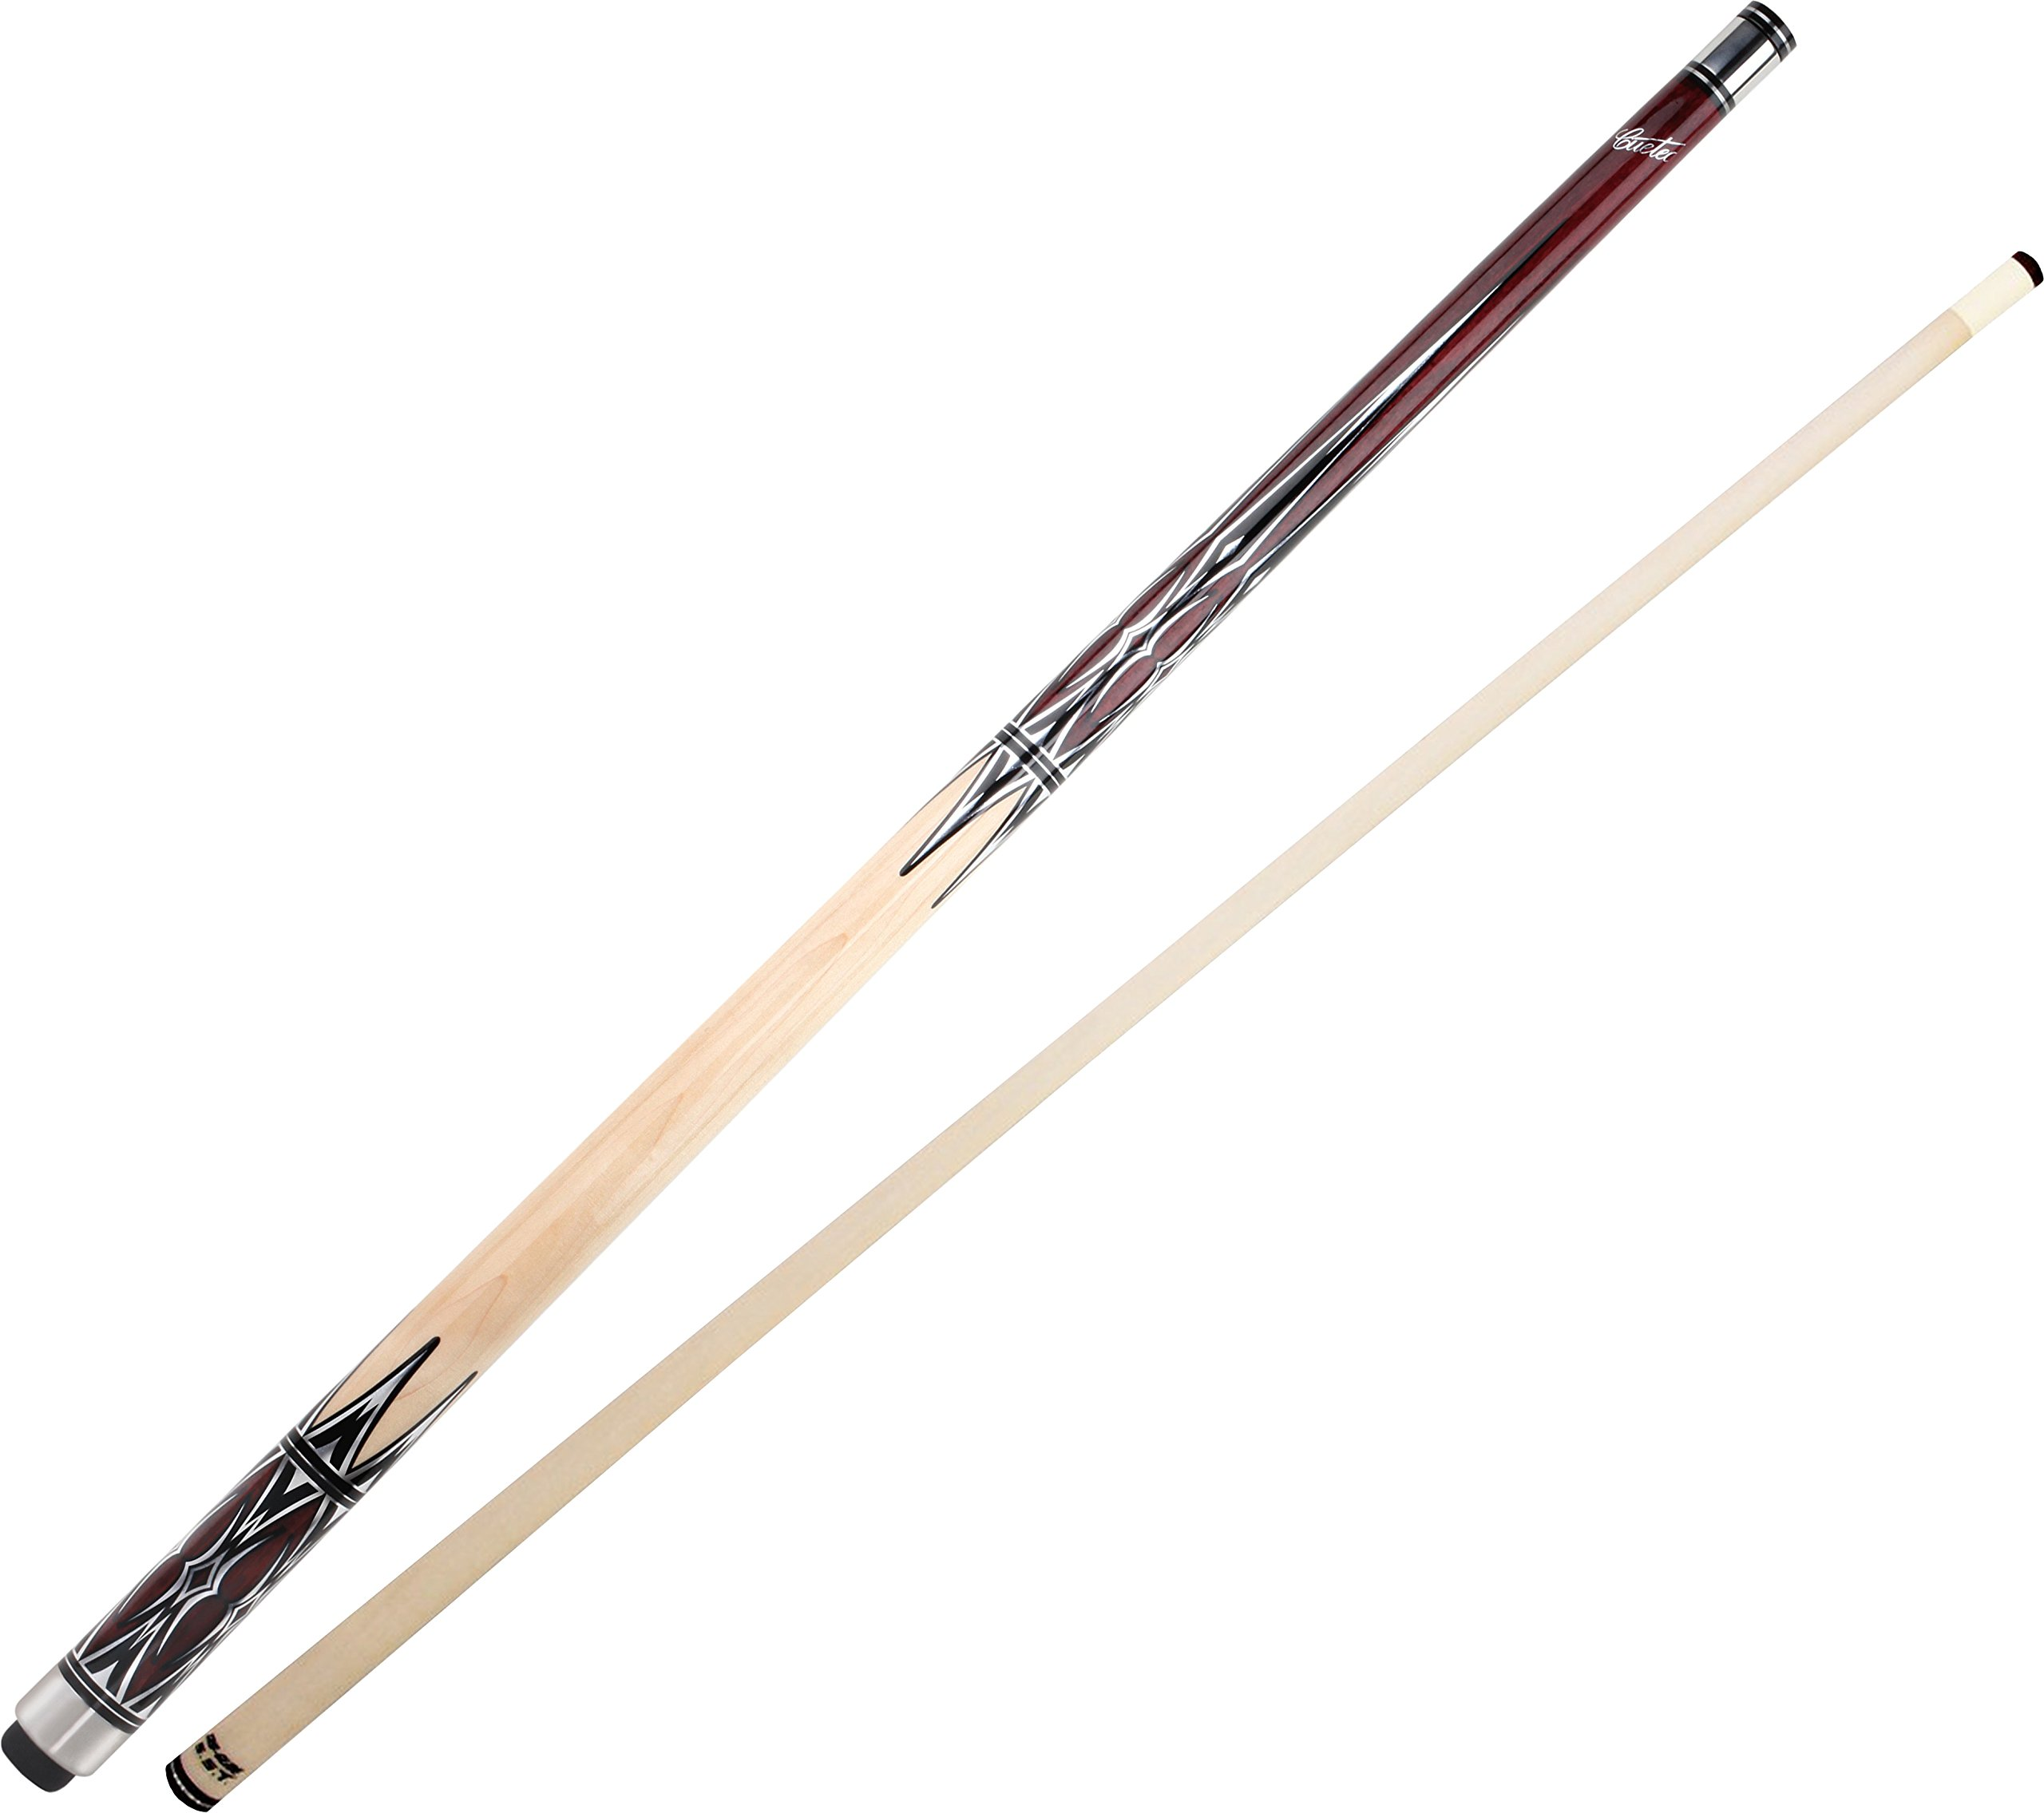 Cuetec Natural Series 58'' 2-Piece Canadian Maple Billiard/Pool Cue, Unwrapped, Brown Stain